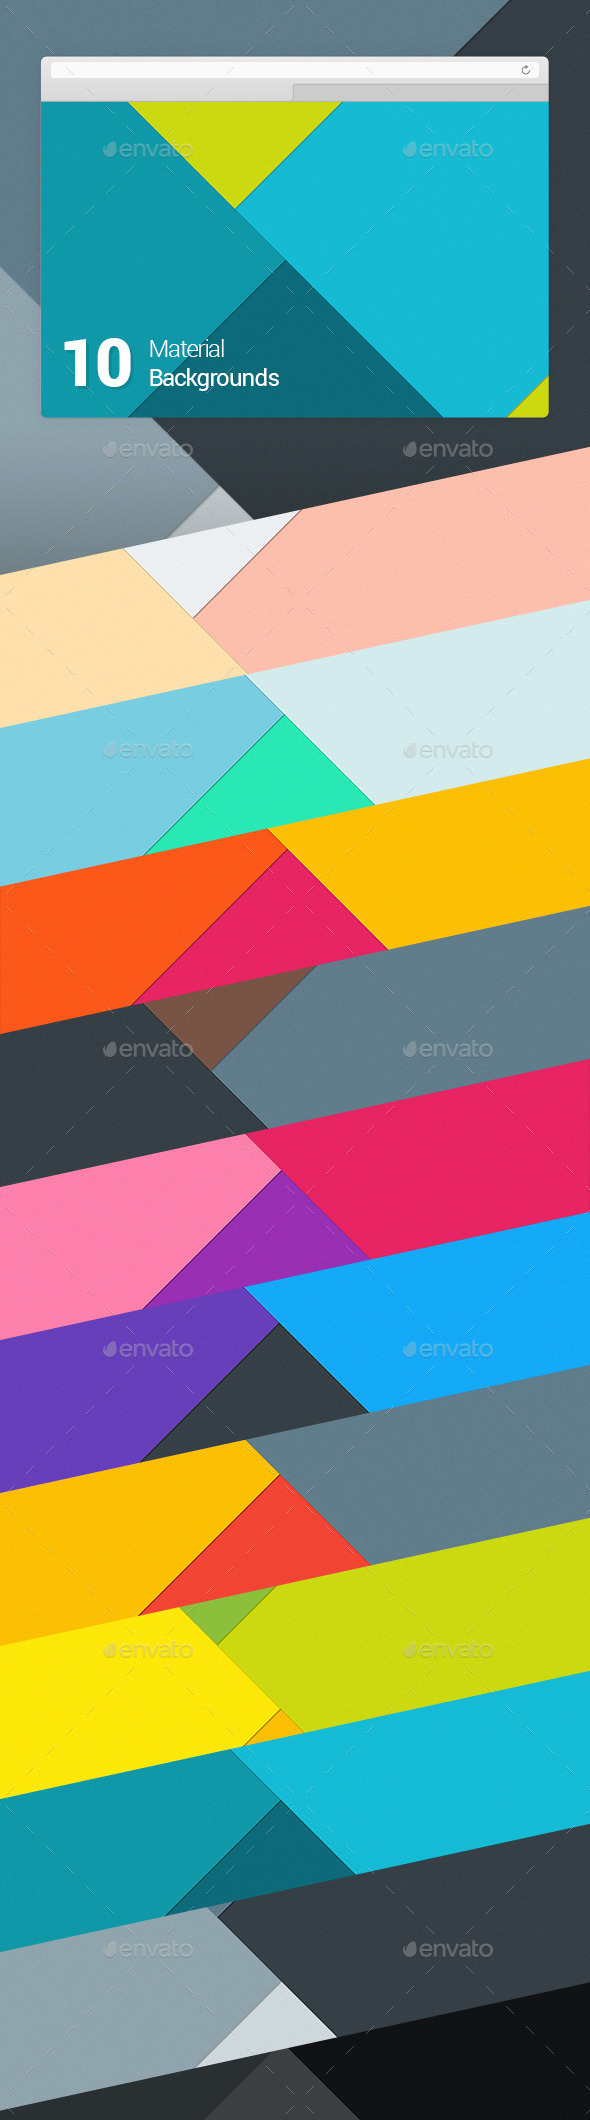 10 Material Design Backgrounds Vol 1 - Abstract Backgrounds